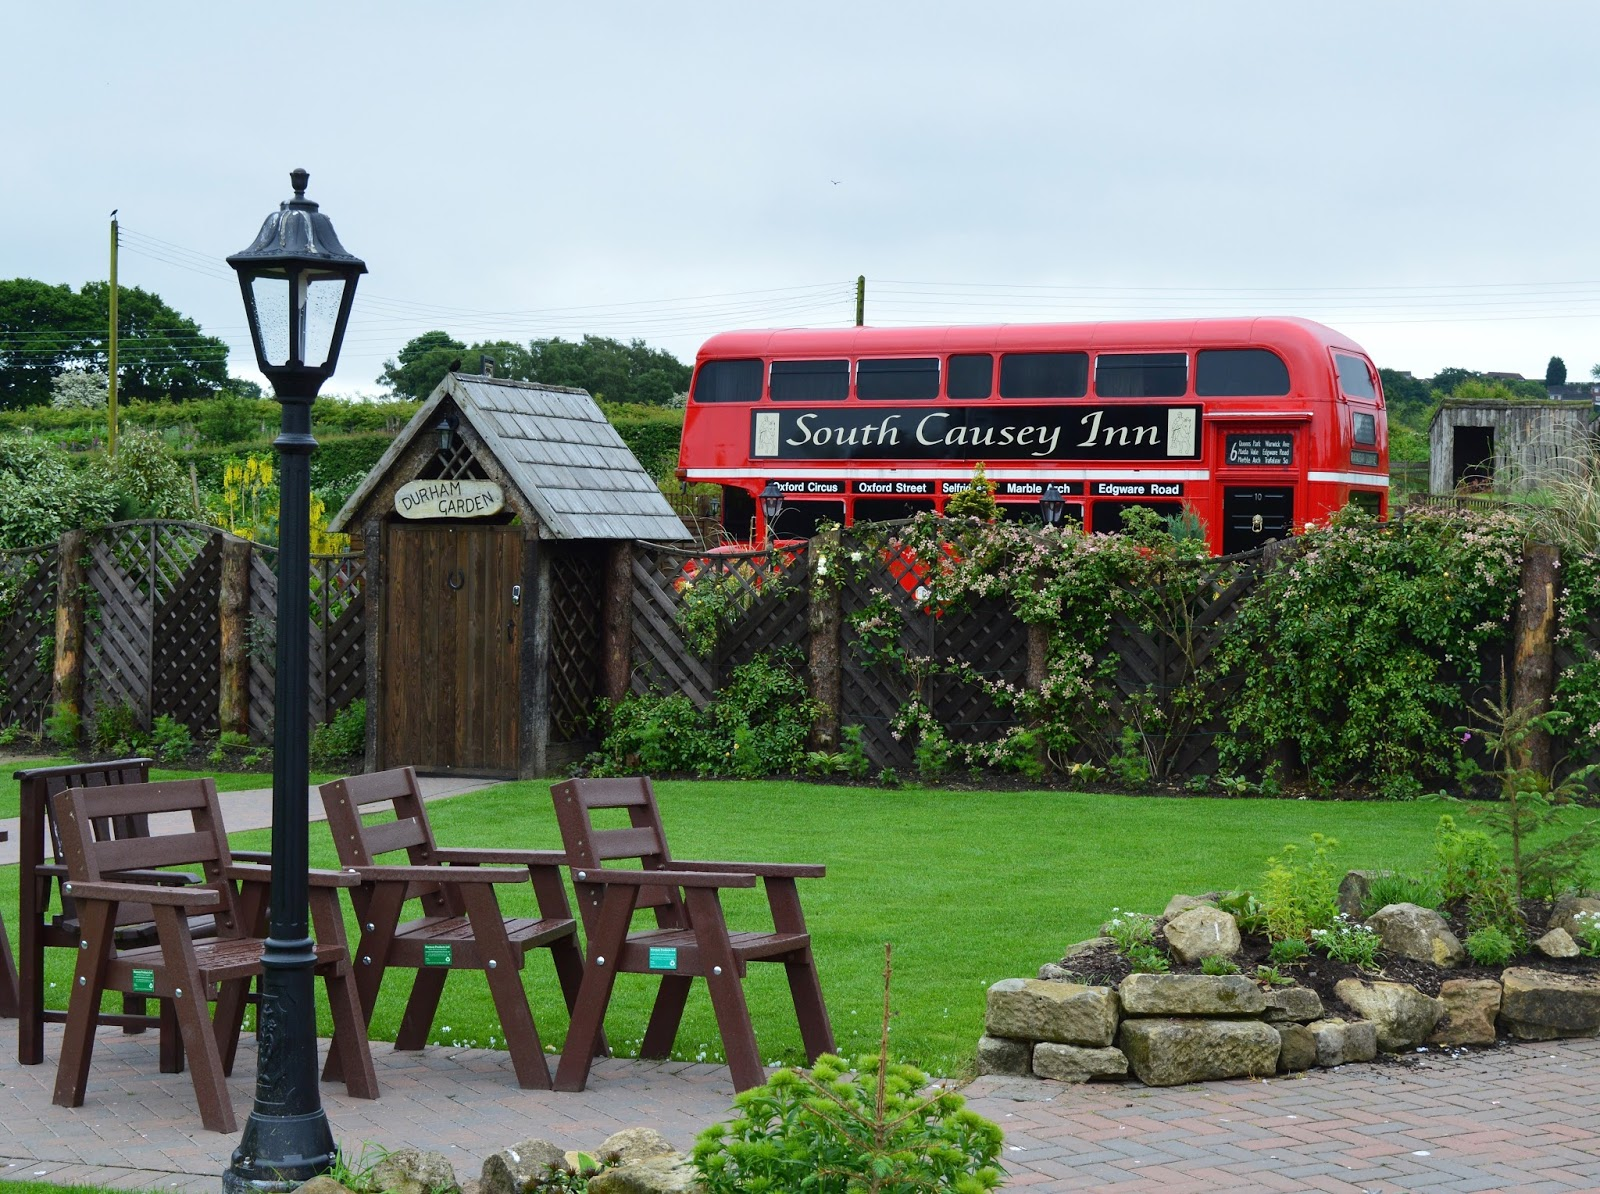 Overnight Stay at South Causey Inn | County Durham - Converted London Bus